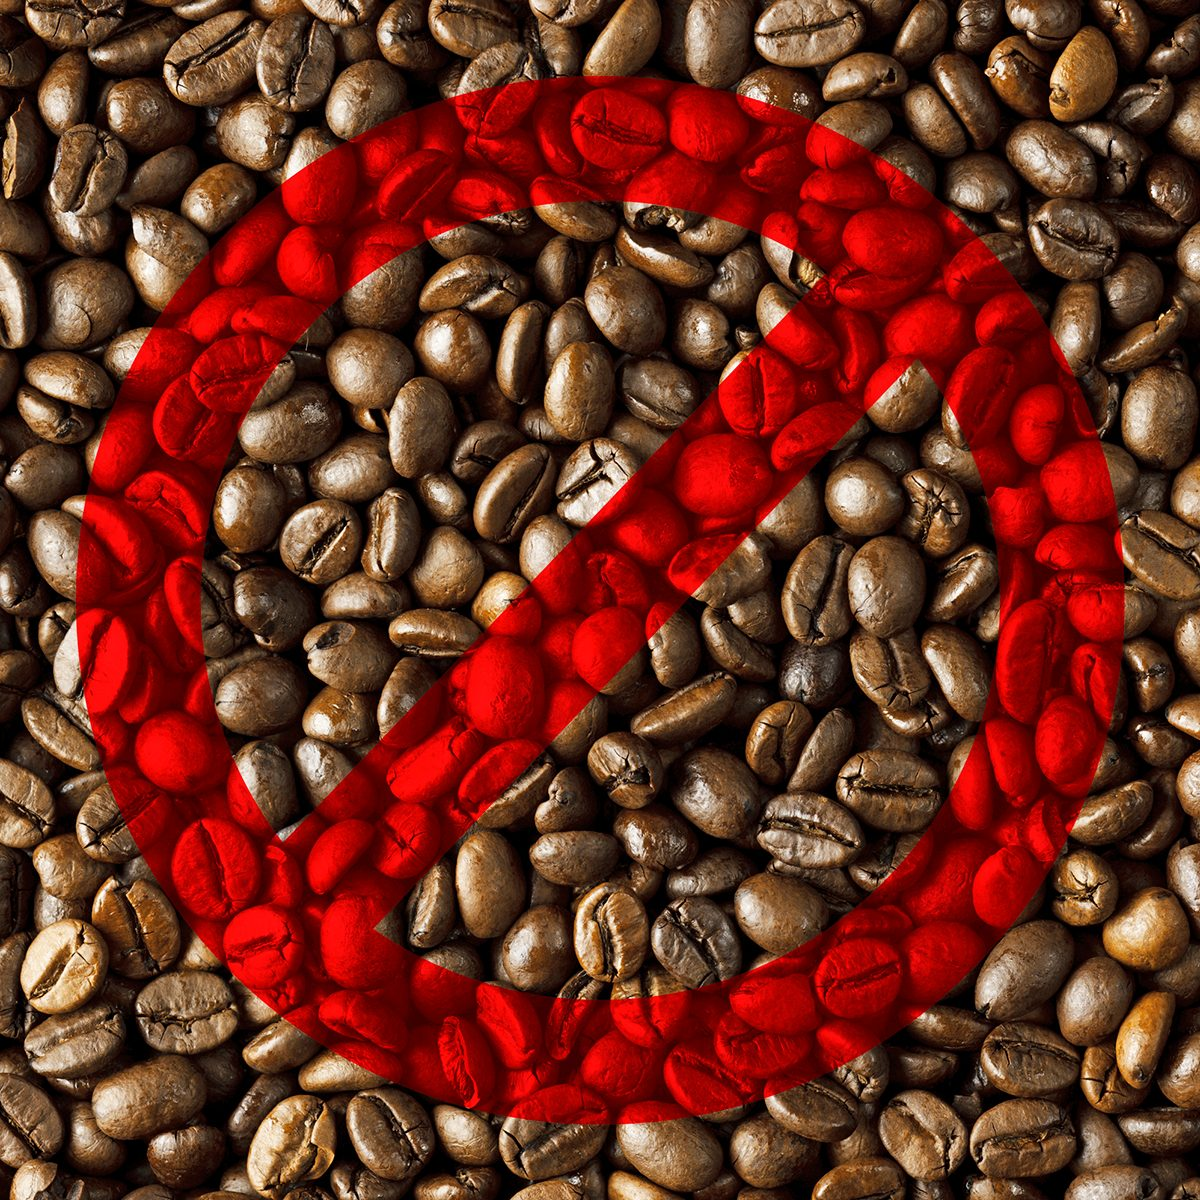 Coffee beans with the no symbol over them